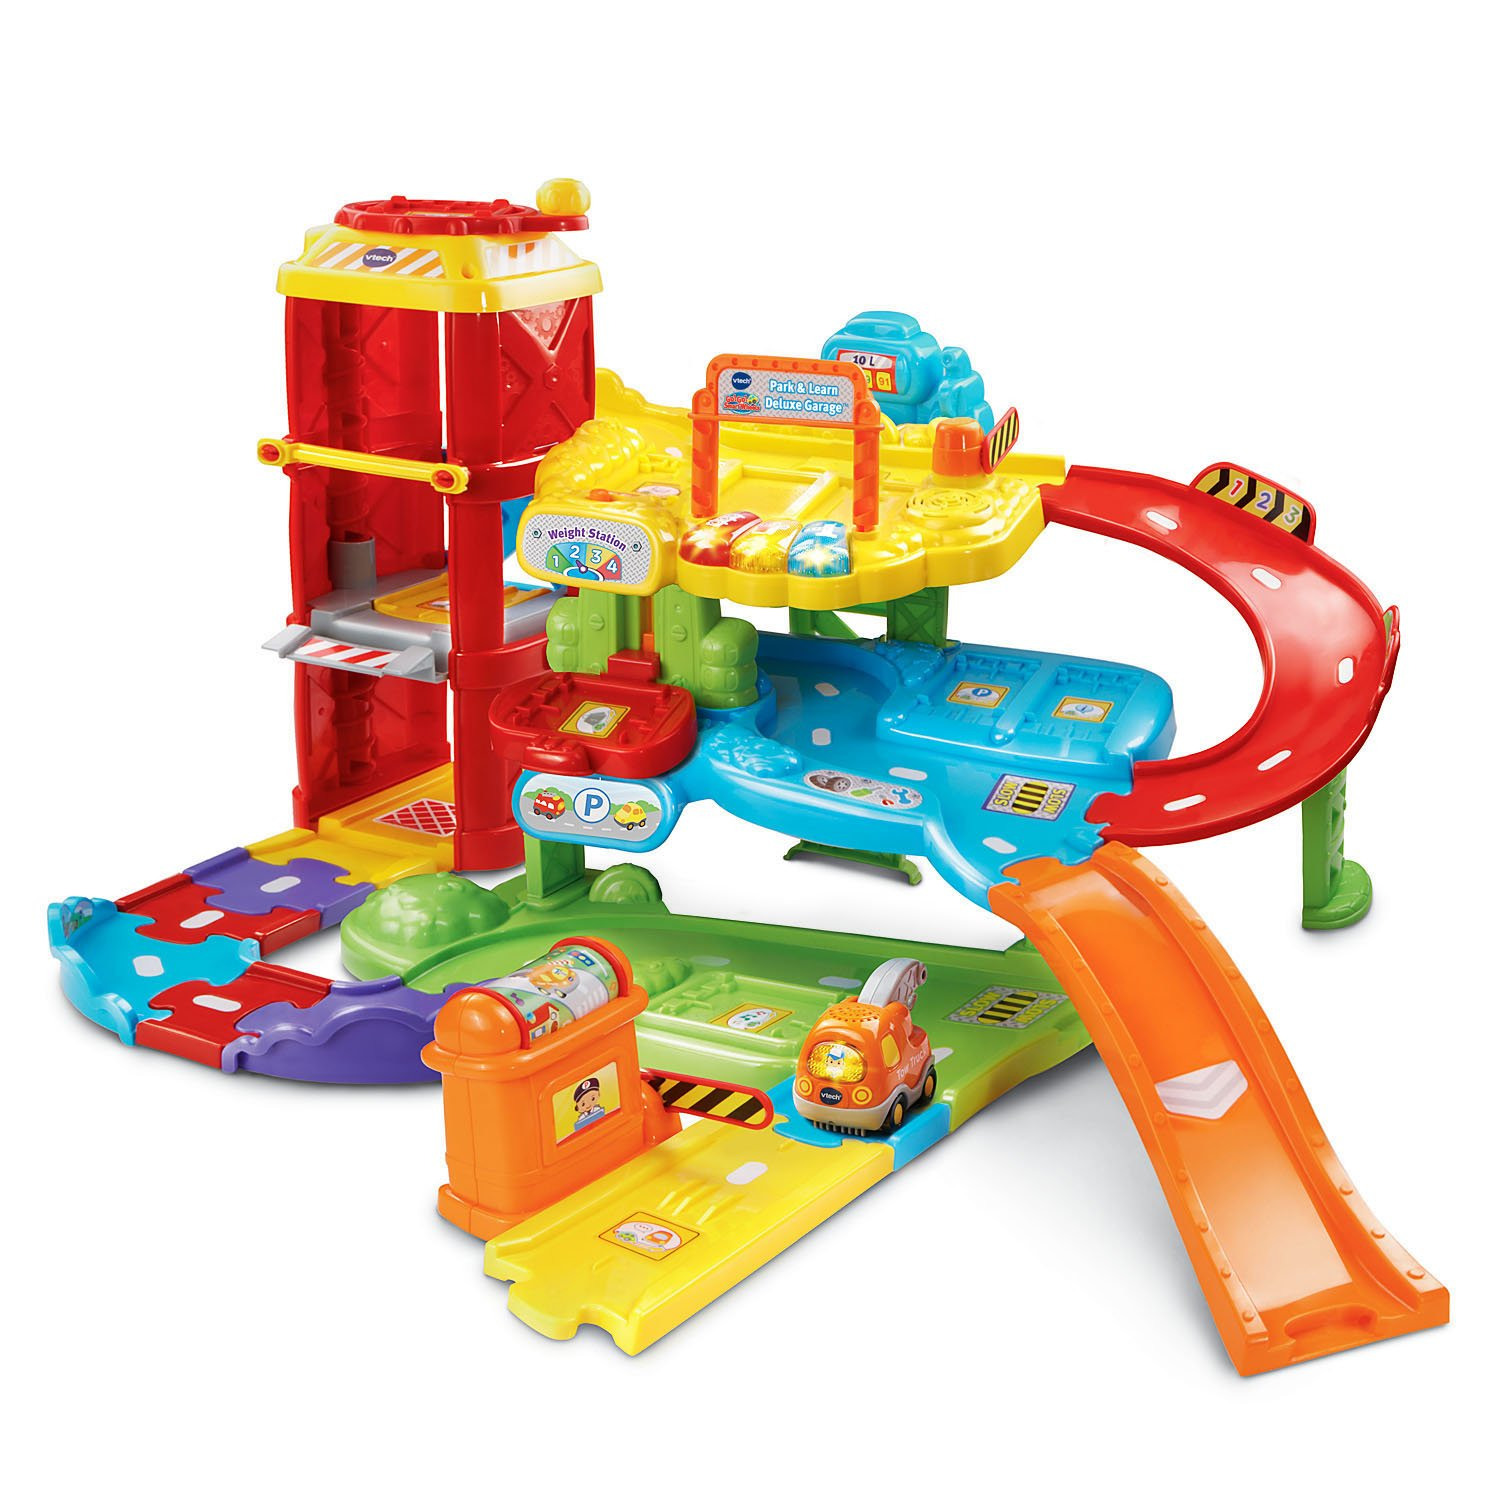 Amazon VTech Go Go Smart Wheels Park and Learn Deluxe